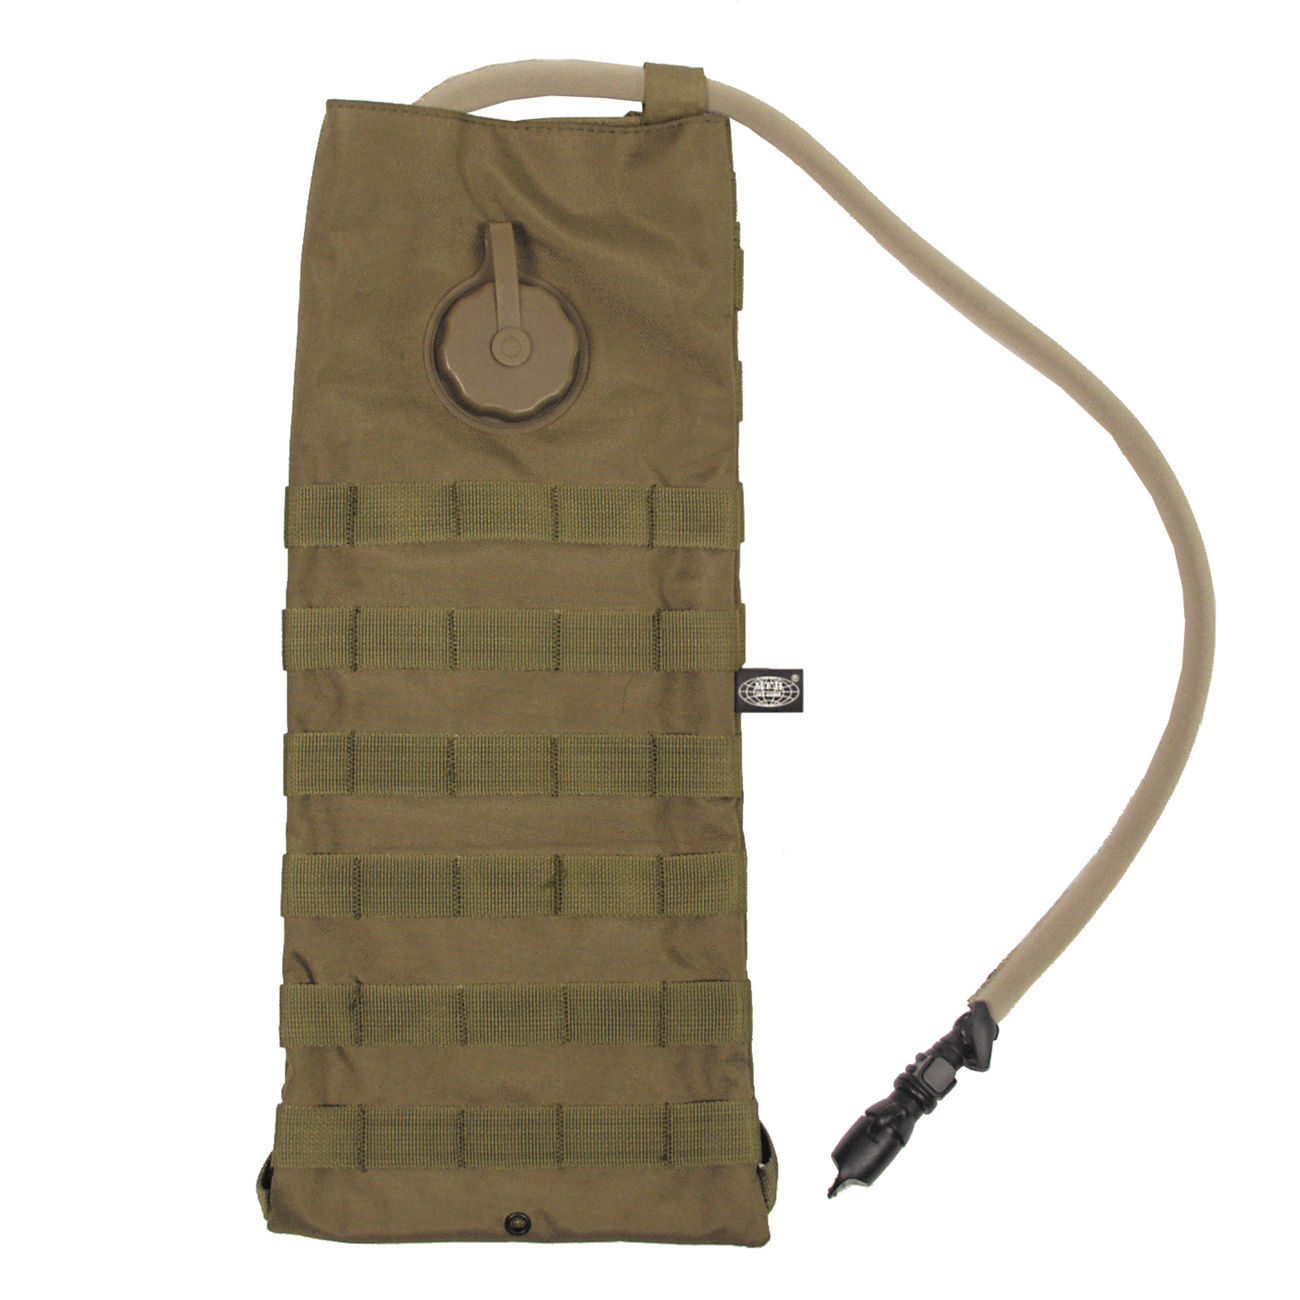 MFH Trinksystem MOLLE 2,5 Liter, coyote 0